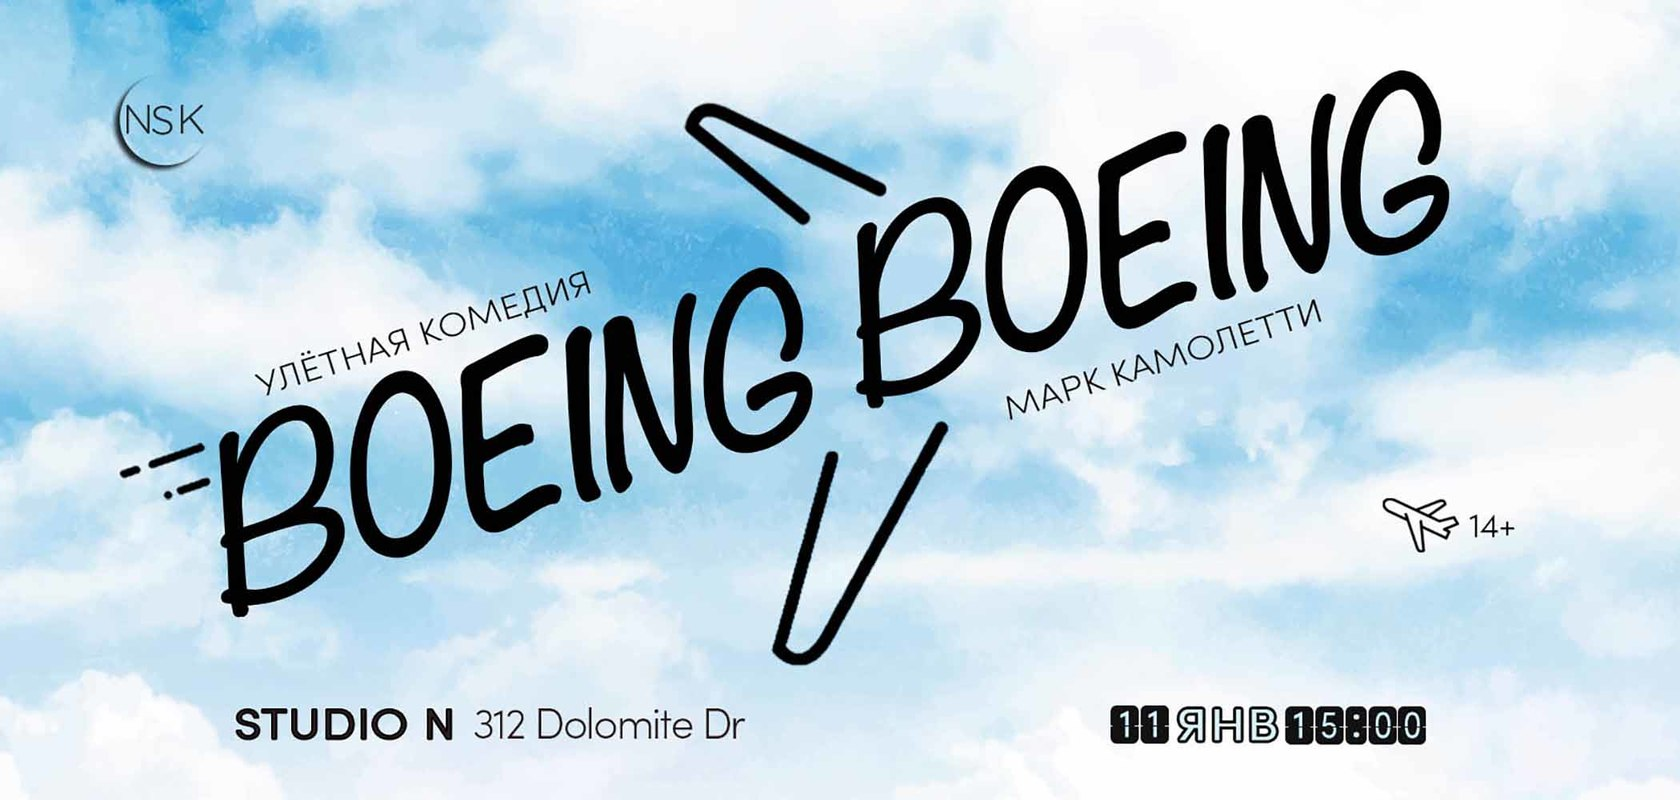 T1920 boeing2100x1000.11.3pm